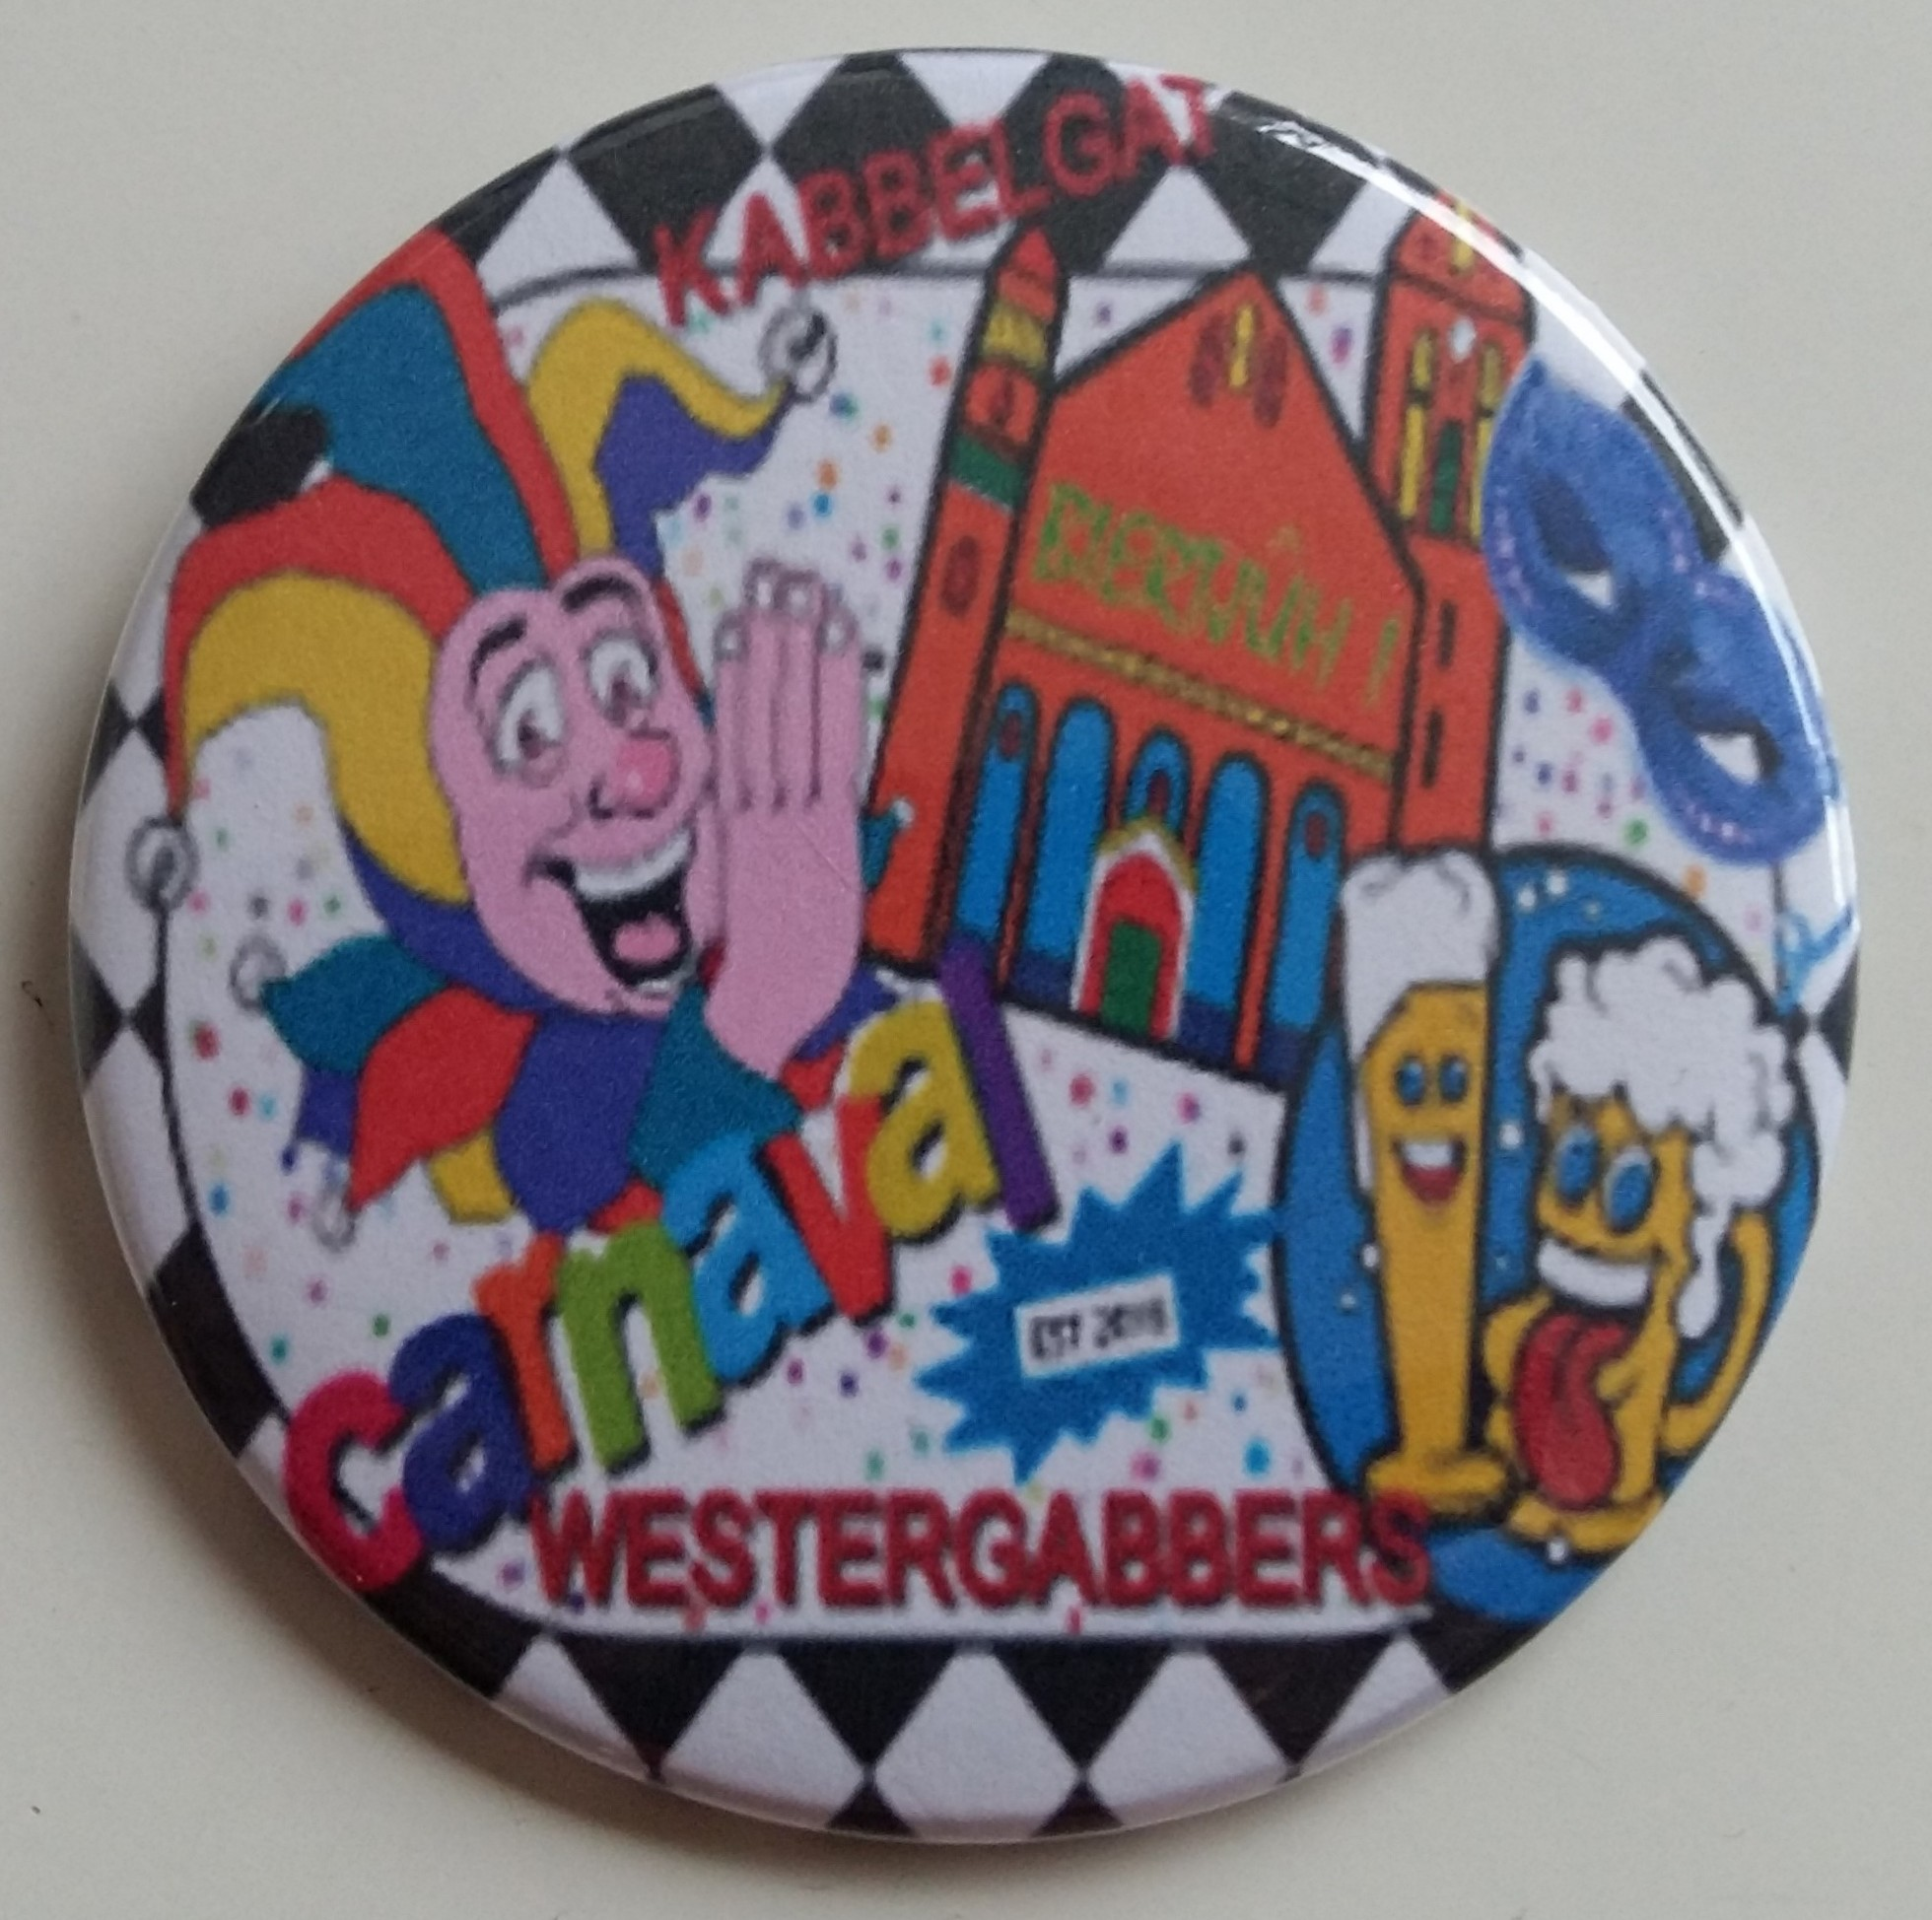 2016_Westergabbers_button_2.jpg